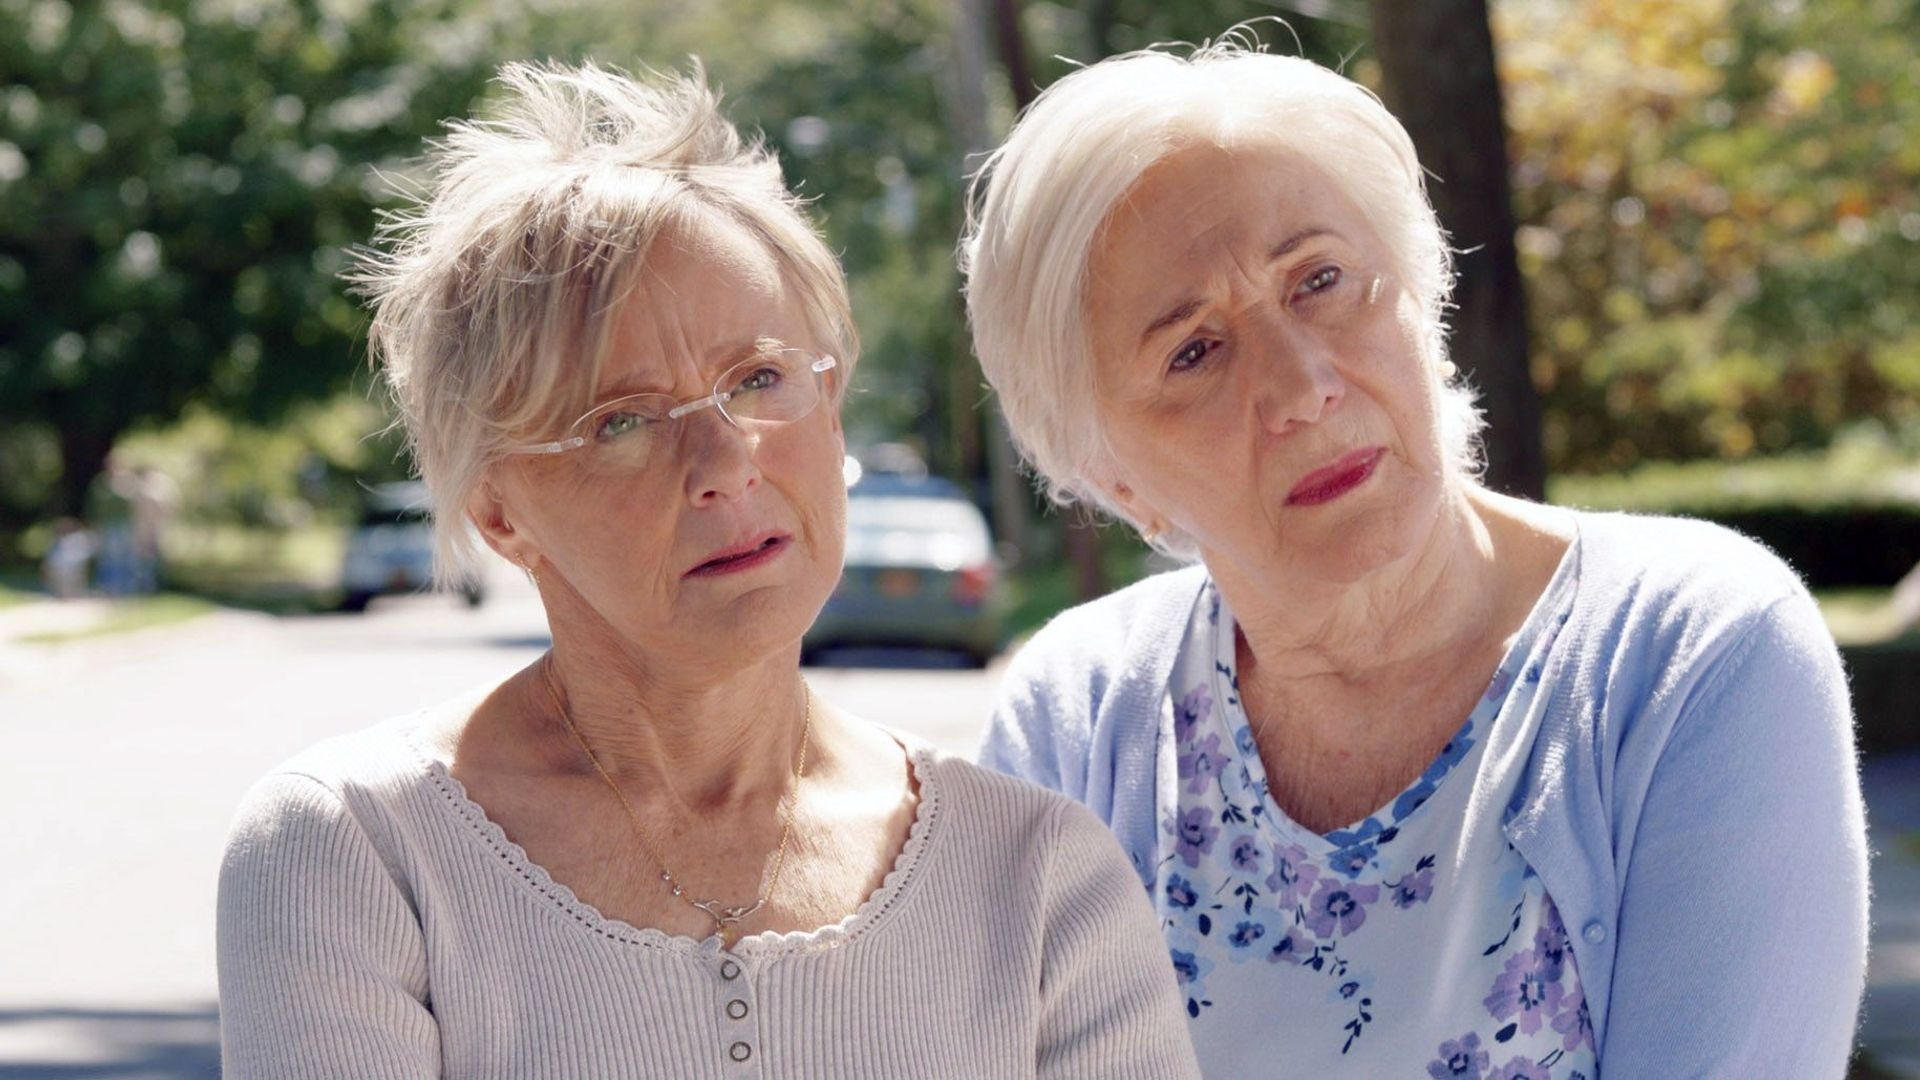 CHANGE IN THE AIR, from left: Mary Beth Hurt, Olympia Dukakis, 2018.